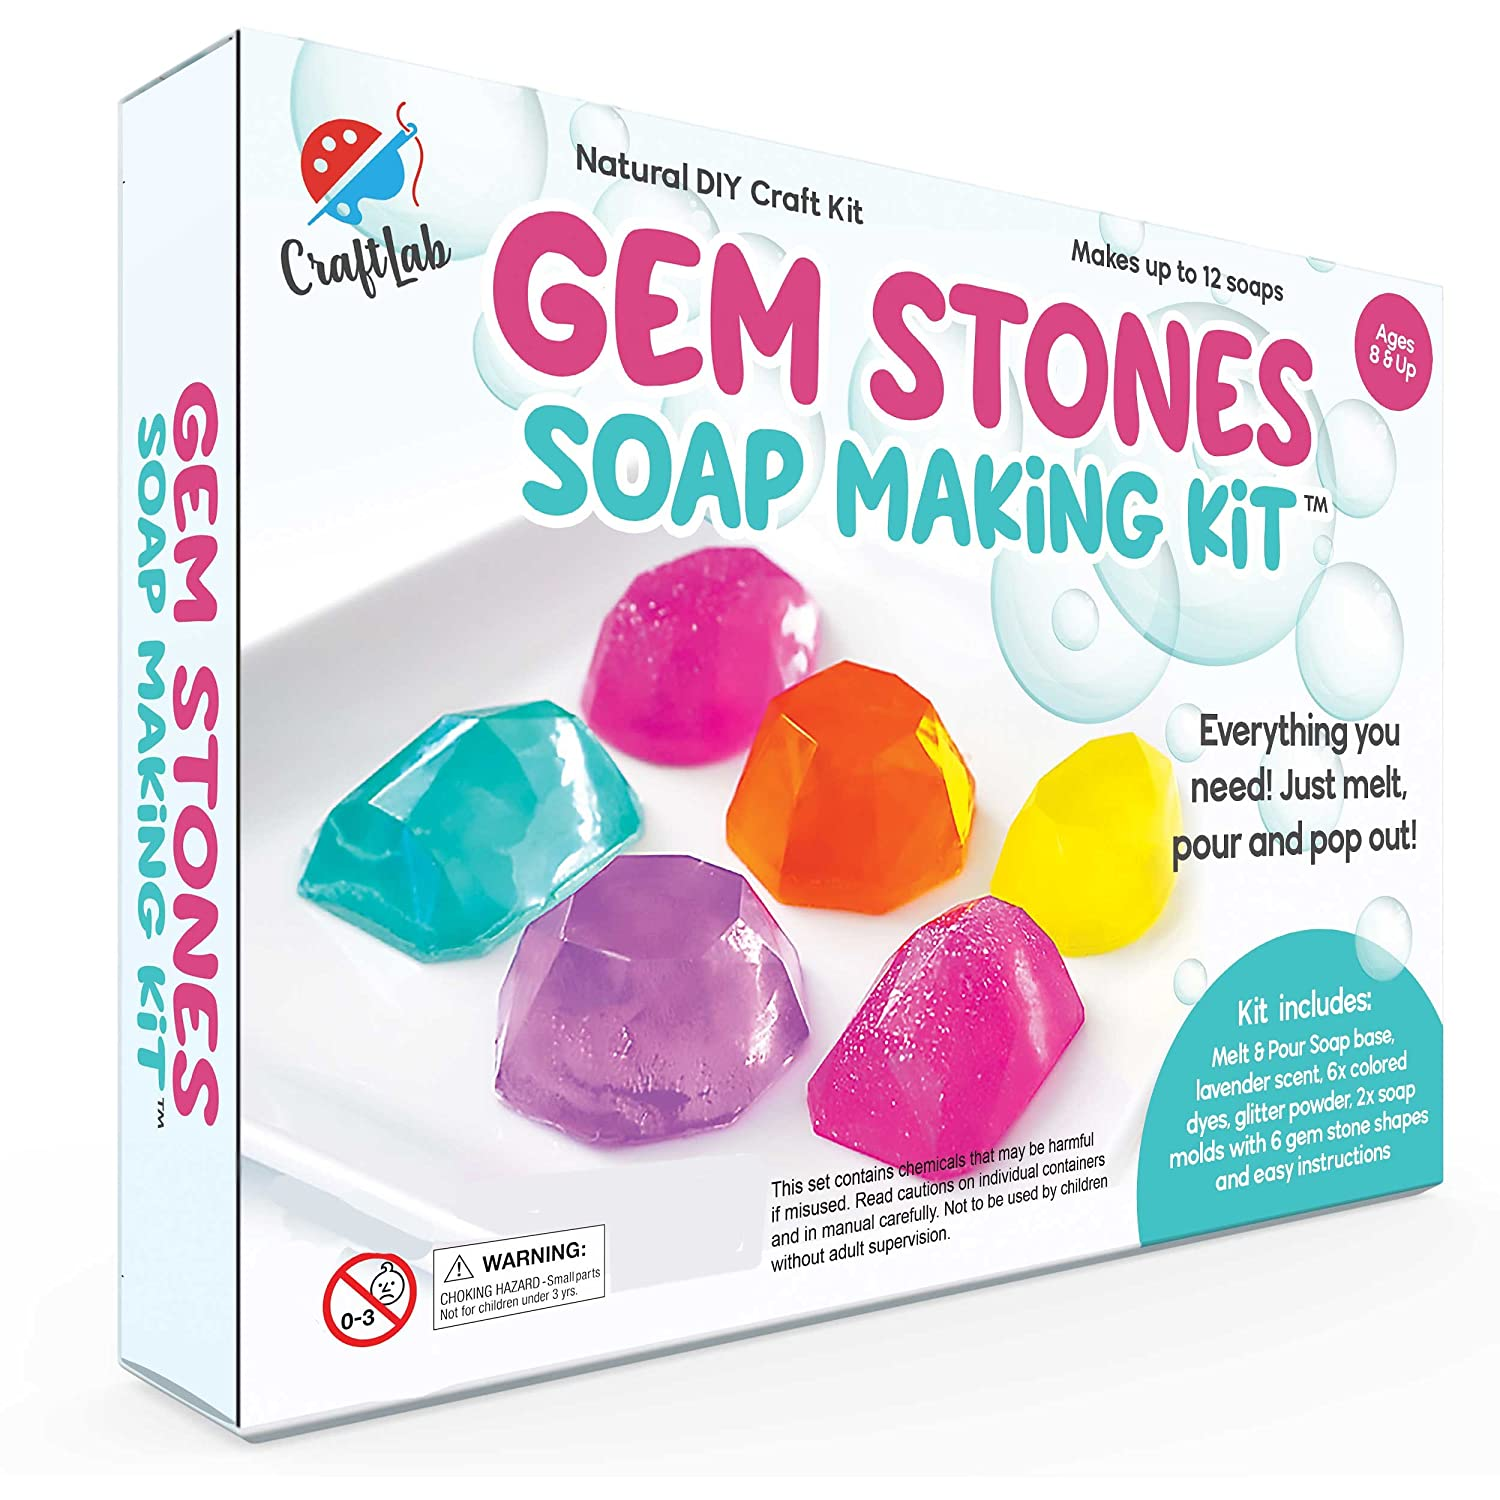 Gem Stones Soap Making Kit, Great DIY Craft Project, Gift & STEM Science Experiment for Kids Ages 8 and Up Handcrafted Goods